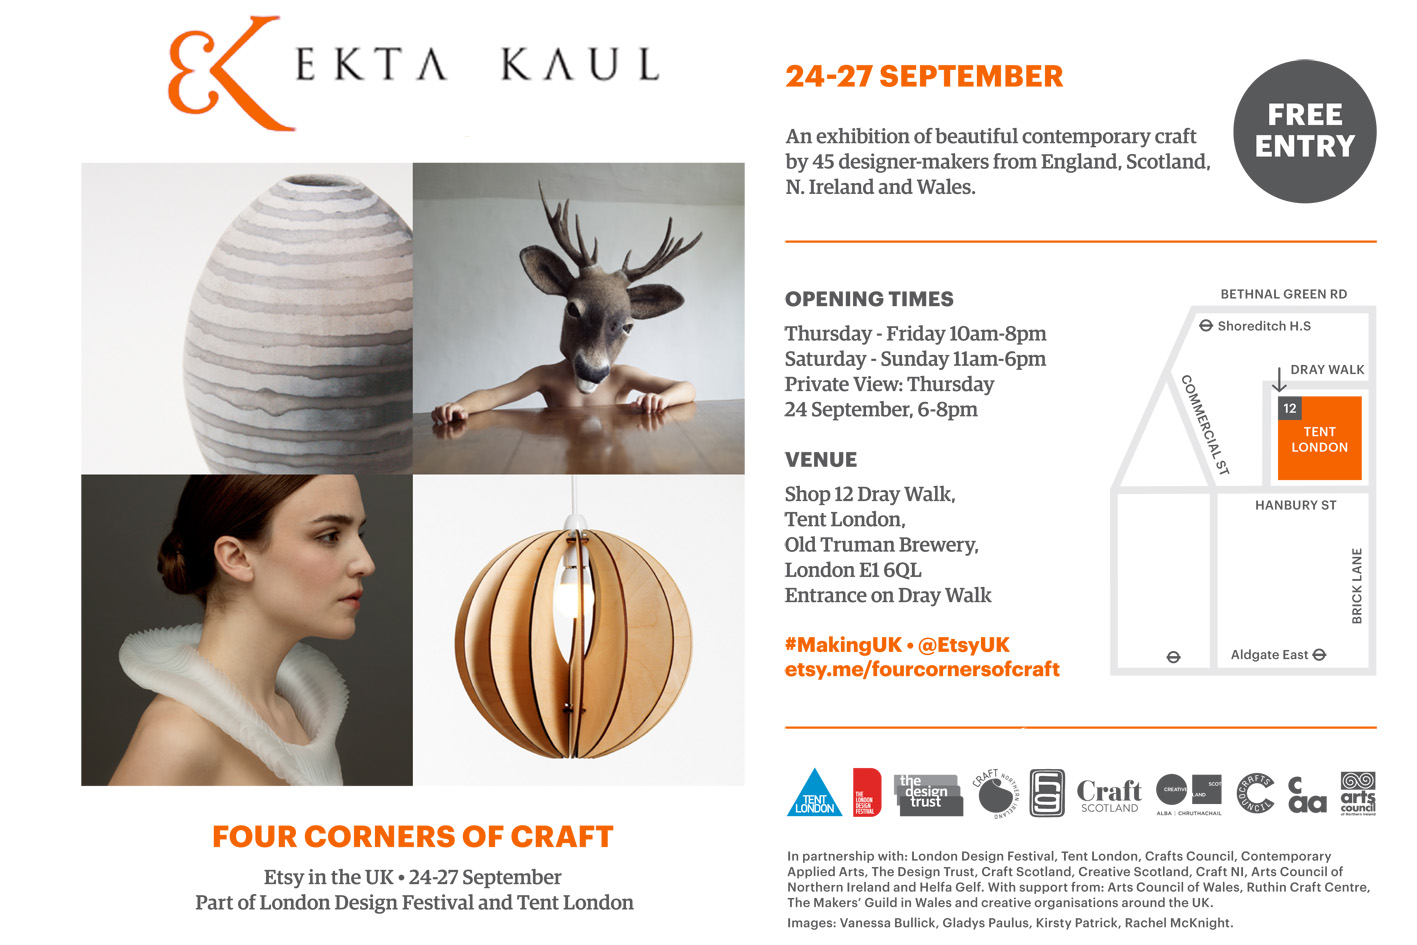 EktaKaul_INVITATION_Etsy-UK_Four-Corners-of-Craft_at-tent-for-LDF_24-27-September-1